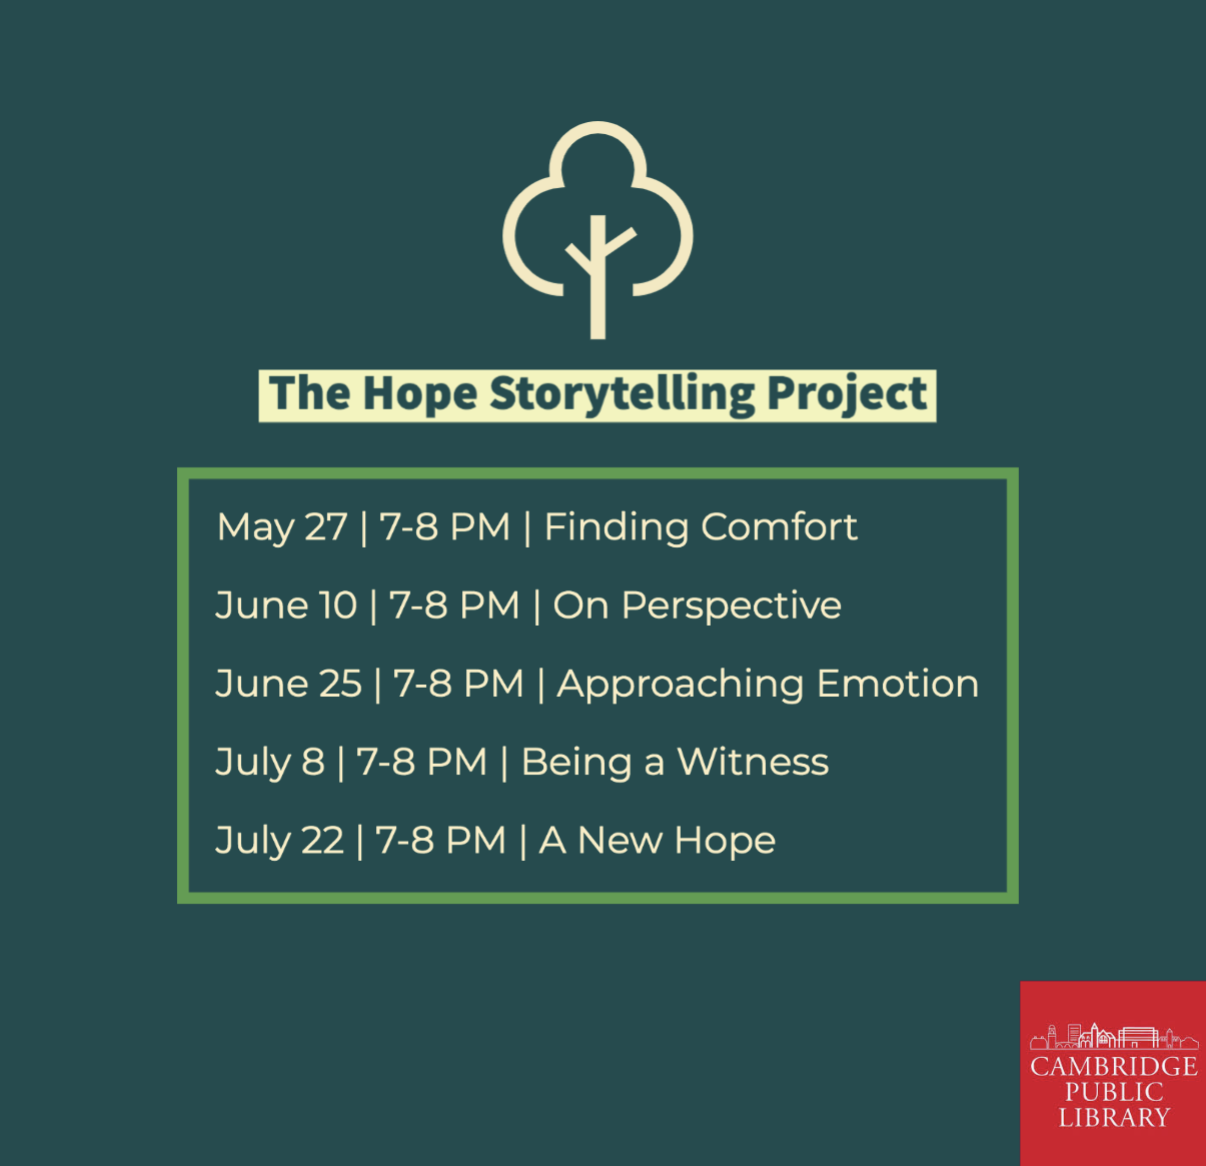 The Hope Storytelling Project: Finding Comfort